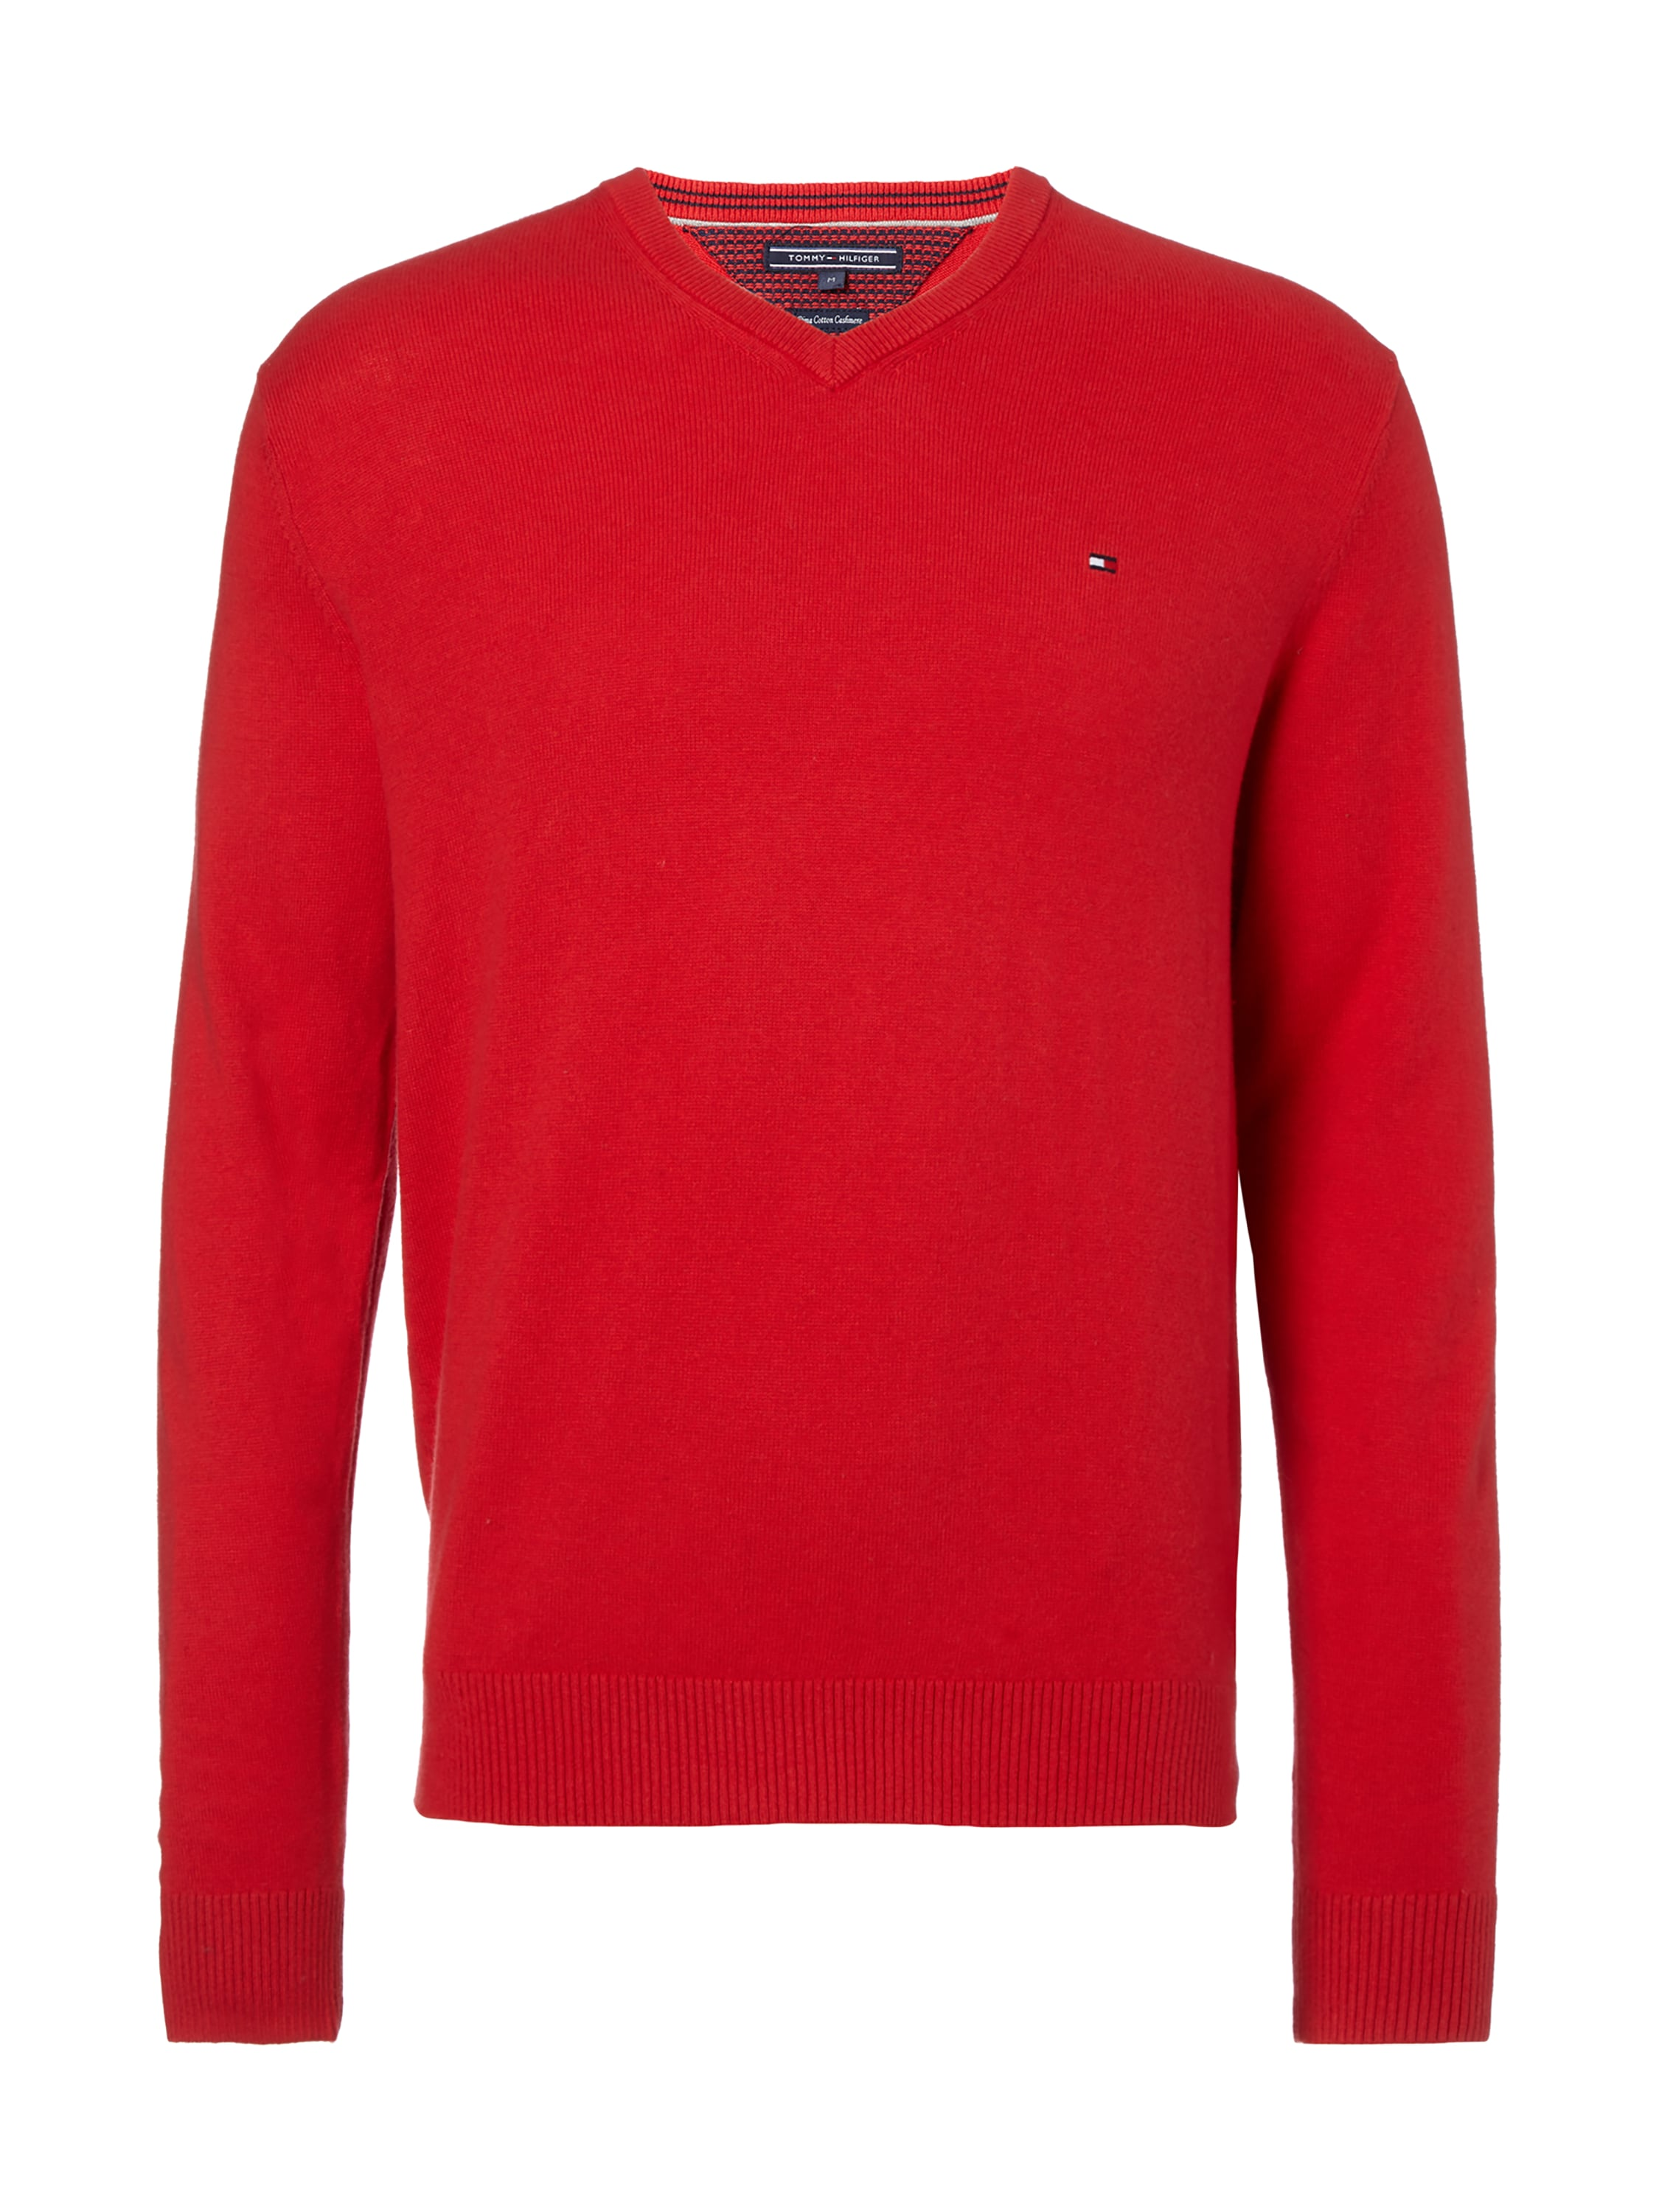 tommy hilfiger pullover mit kaschmir anteil in rot online. Black Bedroom Furniture Sets. Home Design Ideas